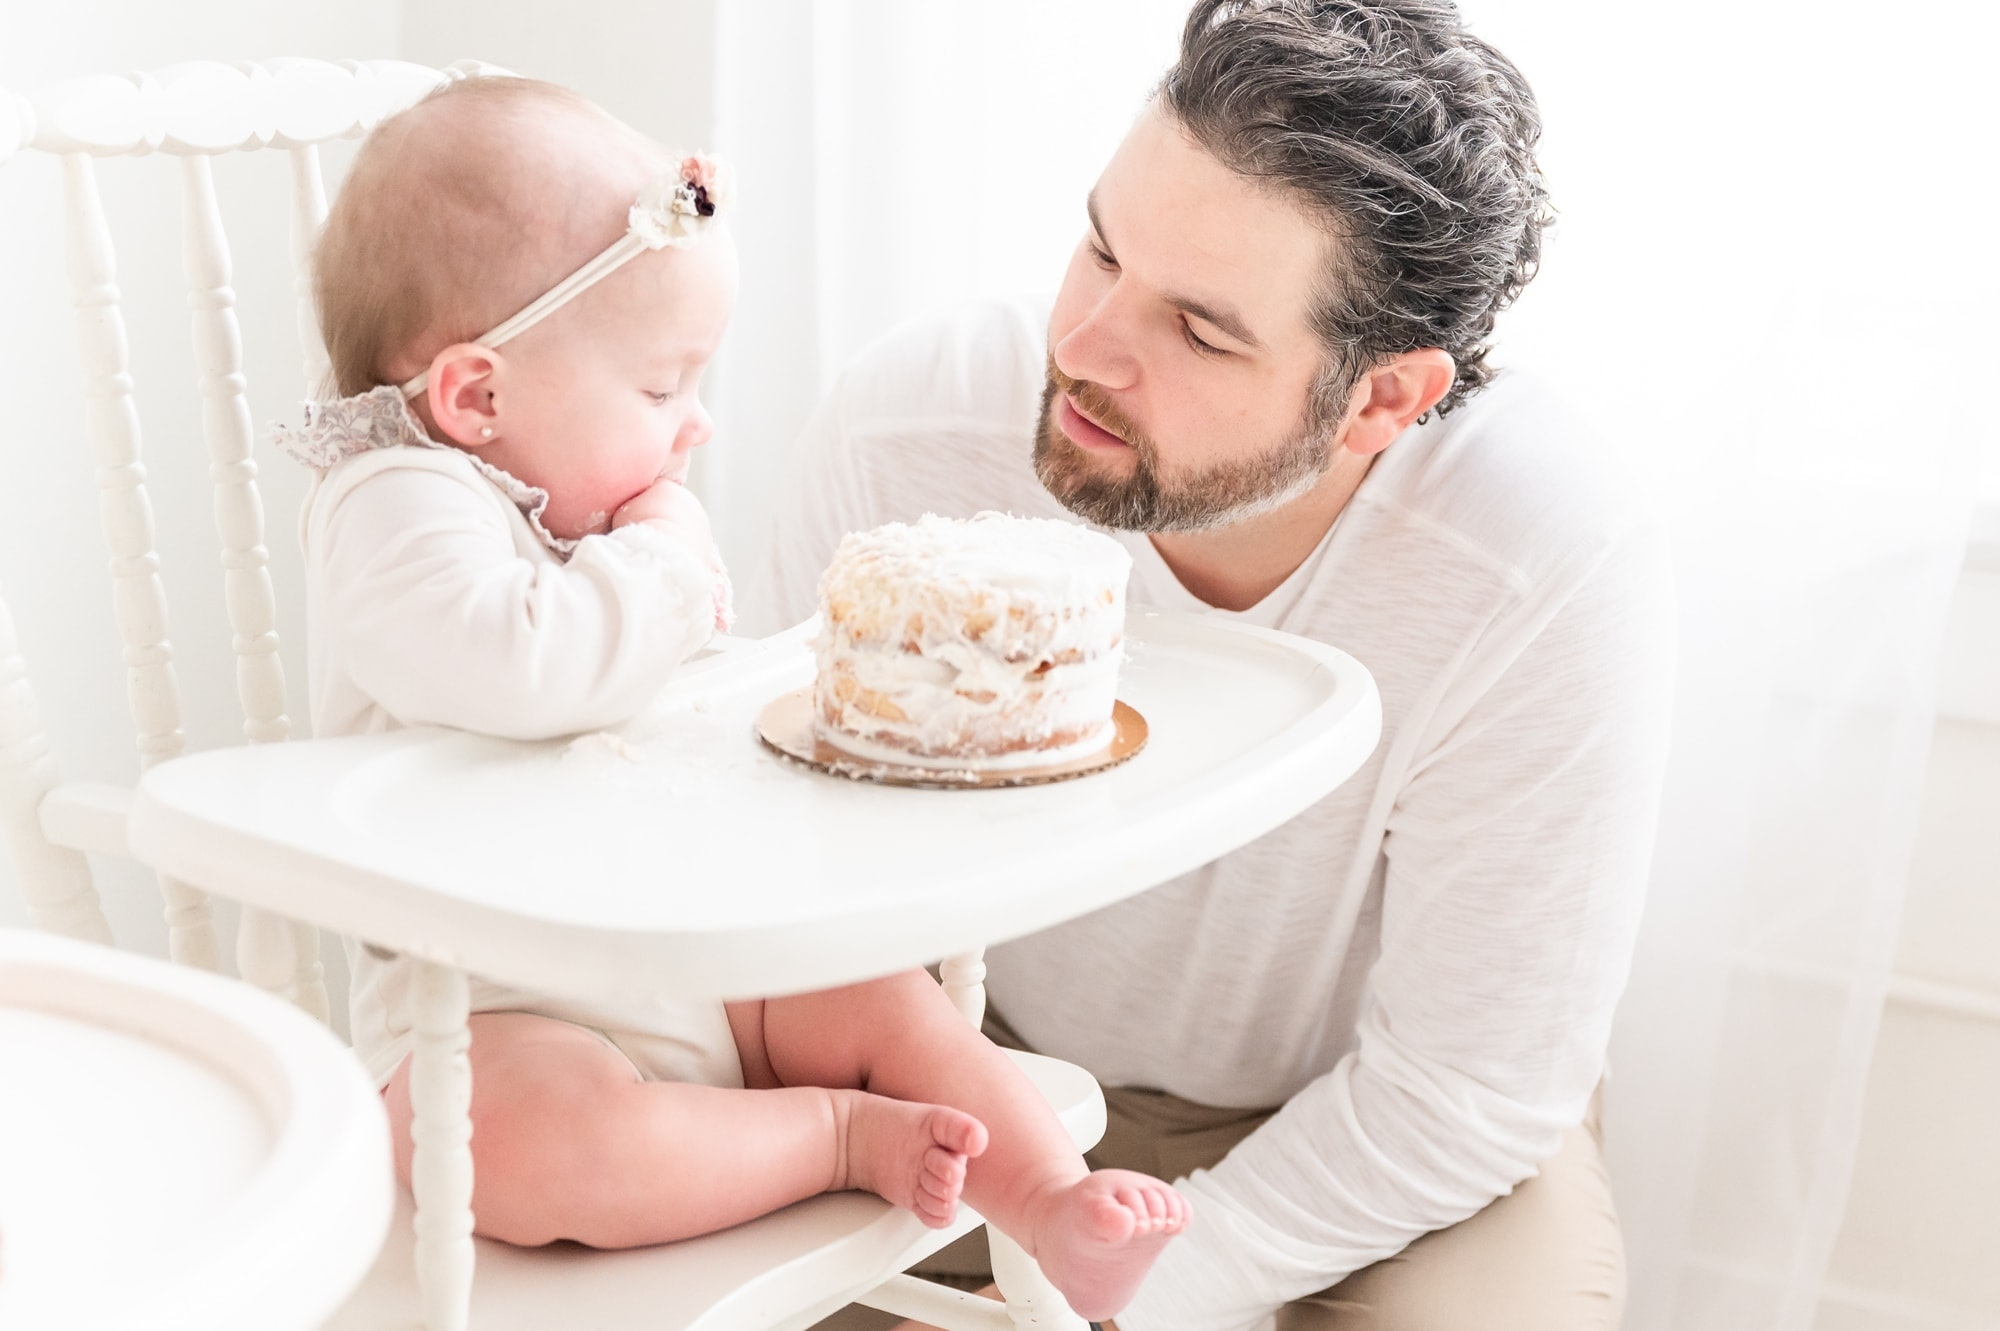 Baby girl easting cake while Dad encourages her during photography session in Dallas studio. Photo by Aimee Hamilton Photography.